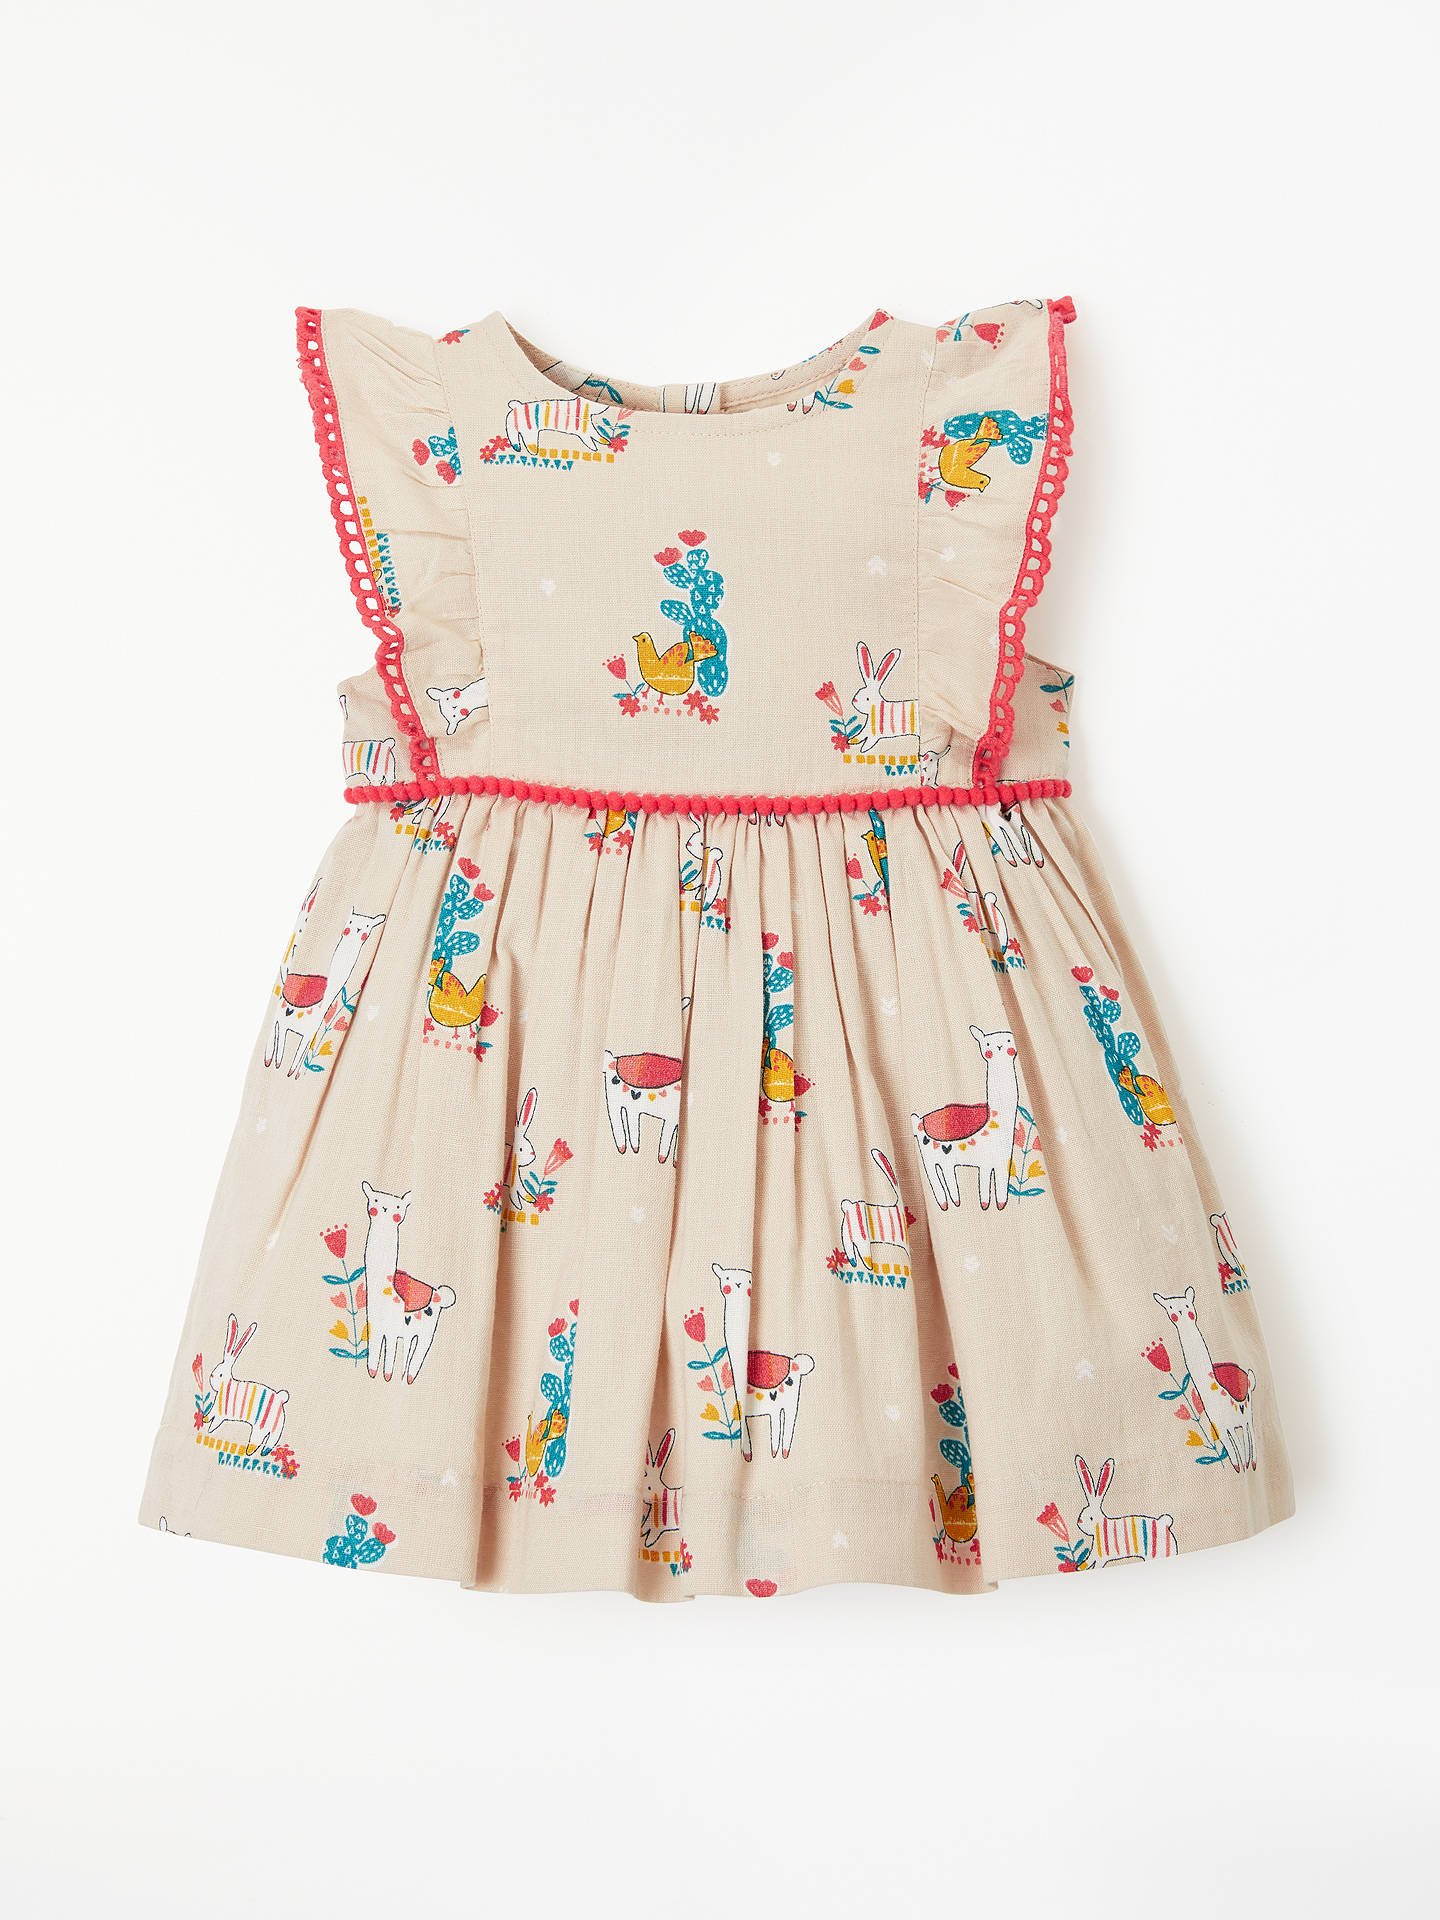 BuyJohn Lewis & Partners Baby Llama and Friends Dress, Multi, 3-6 mths Online at johnlewis.com